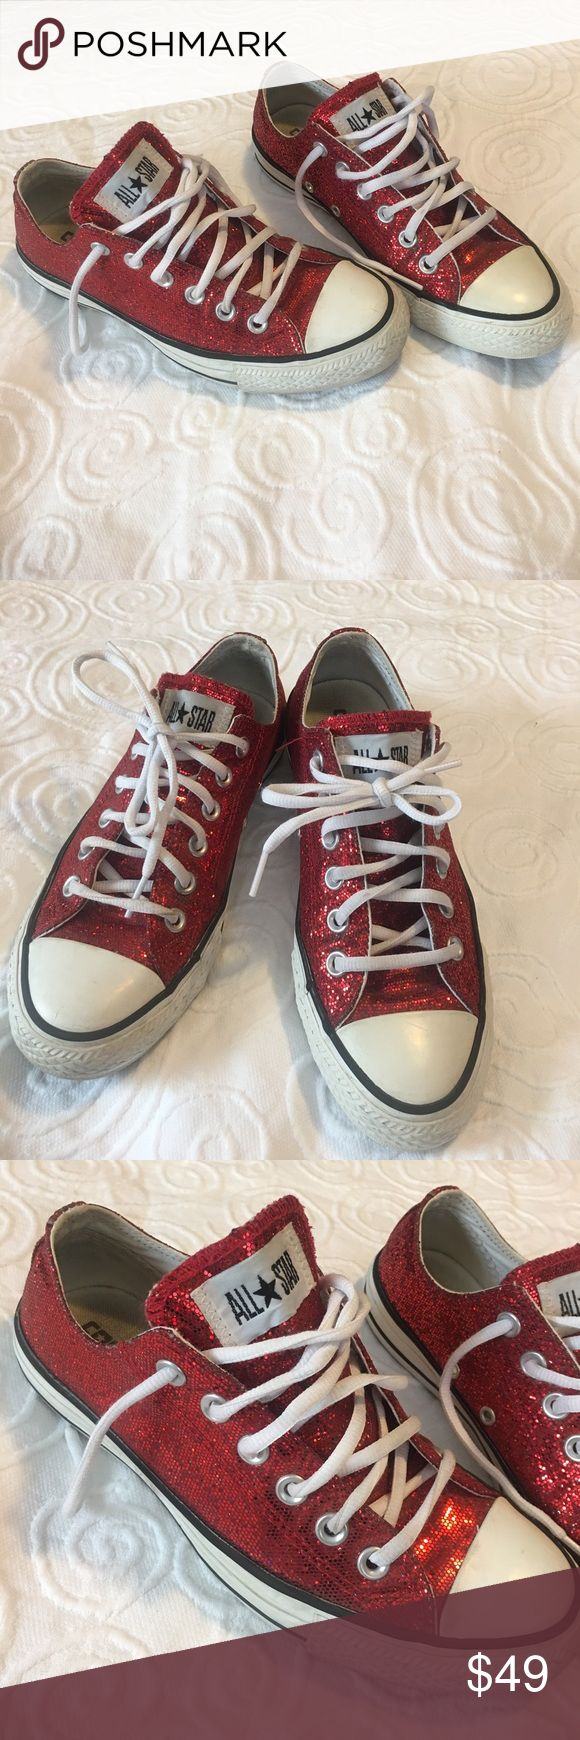 Converse Chuck Taylor All Star Red Glitter Shoes Converse Chuck Taylor All Star Red Glitter Shoes. Men's sizing is 5 (women's is 7) which is how they are listed here. Almost new condition very clean. Super cute shoes❤️ Converse Shoes